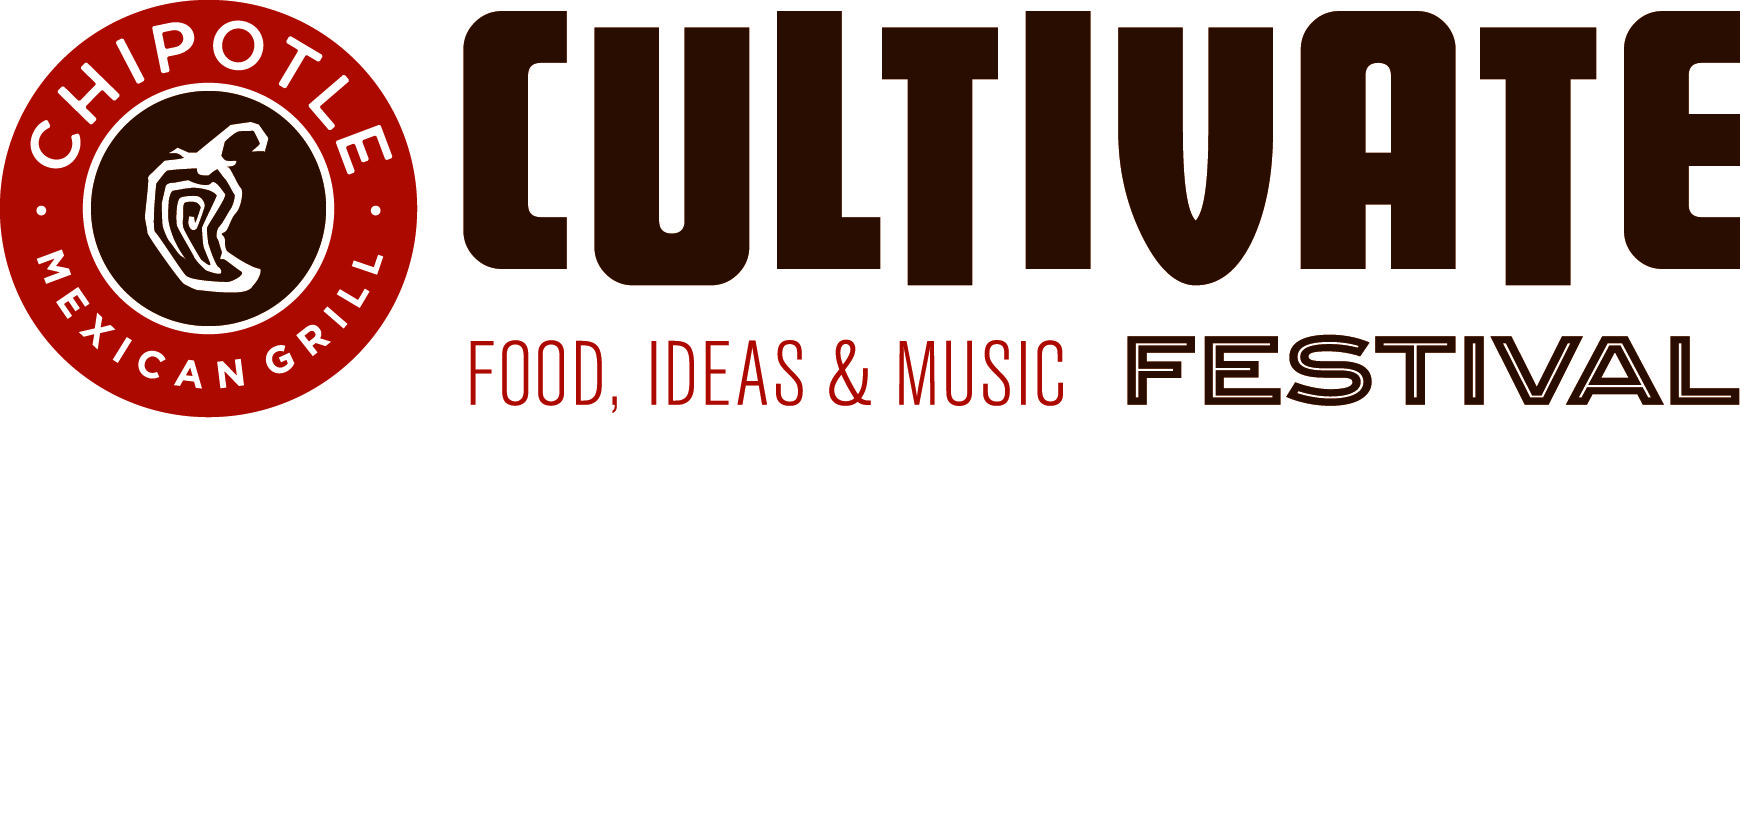 Chipotle Logo chipotle cultivate free family festival in kansas city - mommypalooza™